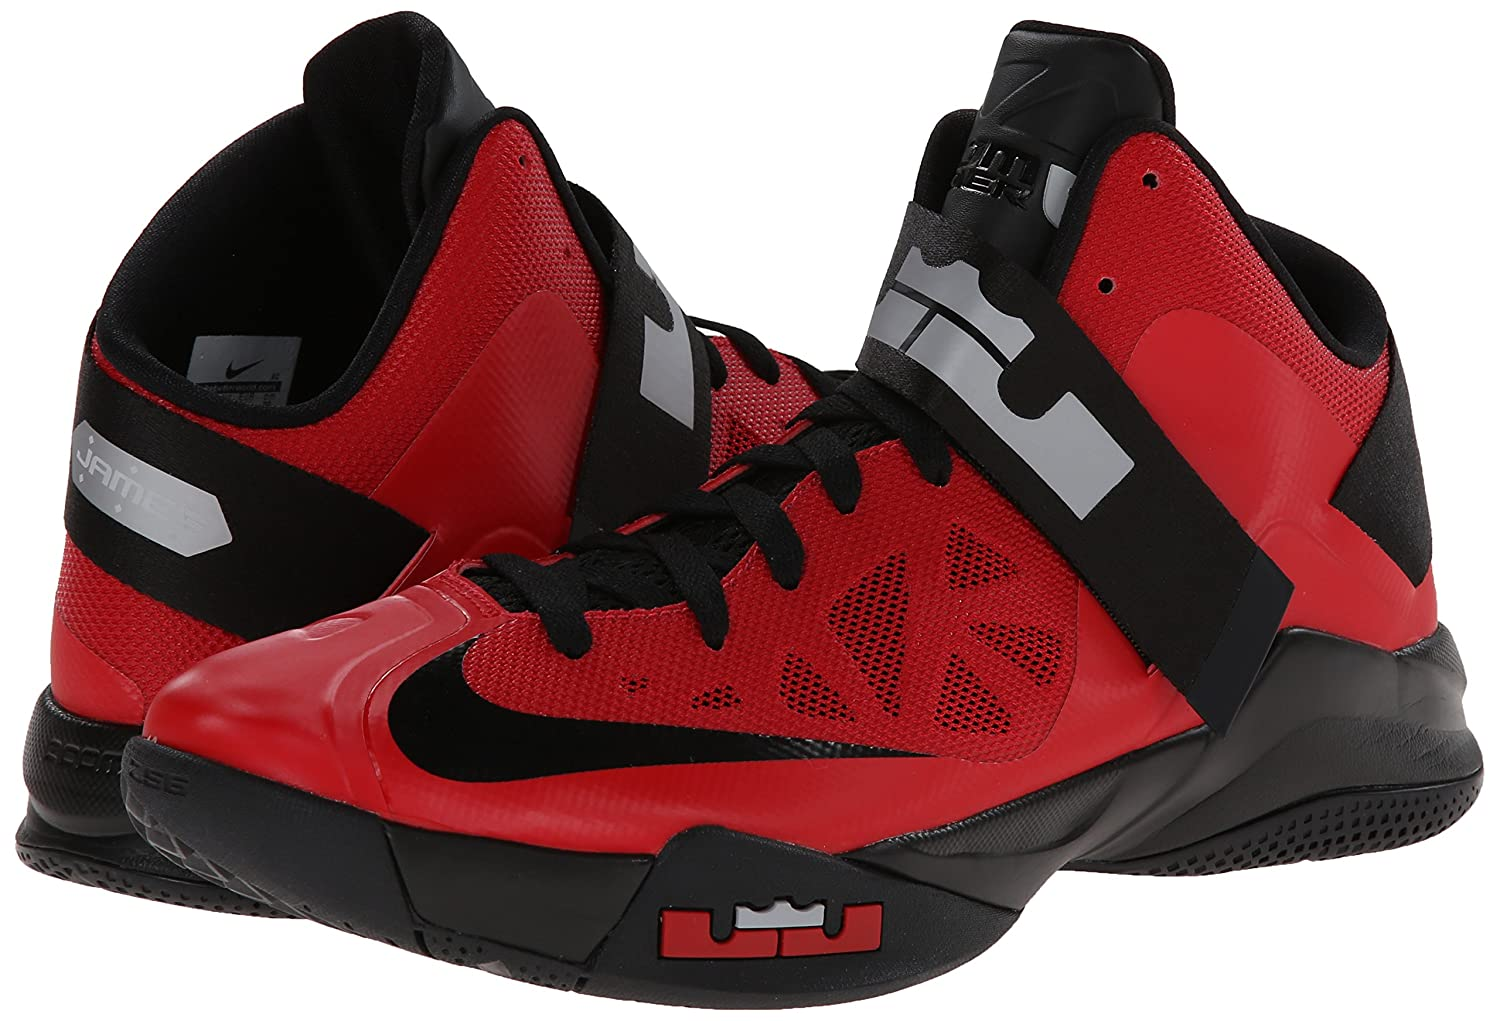 official photos a2f69 fa87e Amazon.com   Nike Zoom Soldier VI Mens Basketball Shoes 525015-600  University Red 8 M US   Basketball